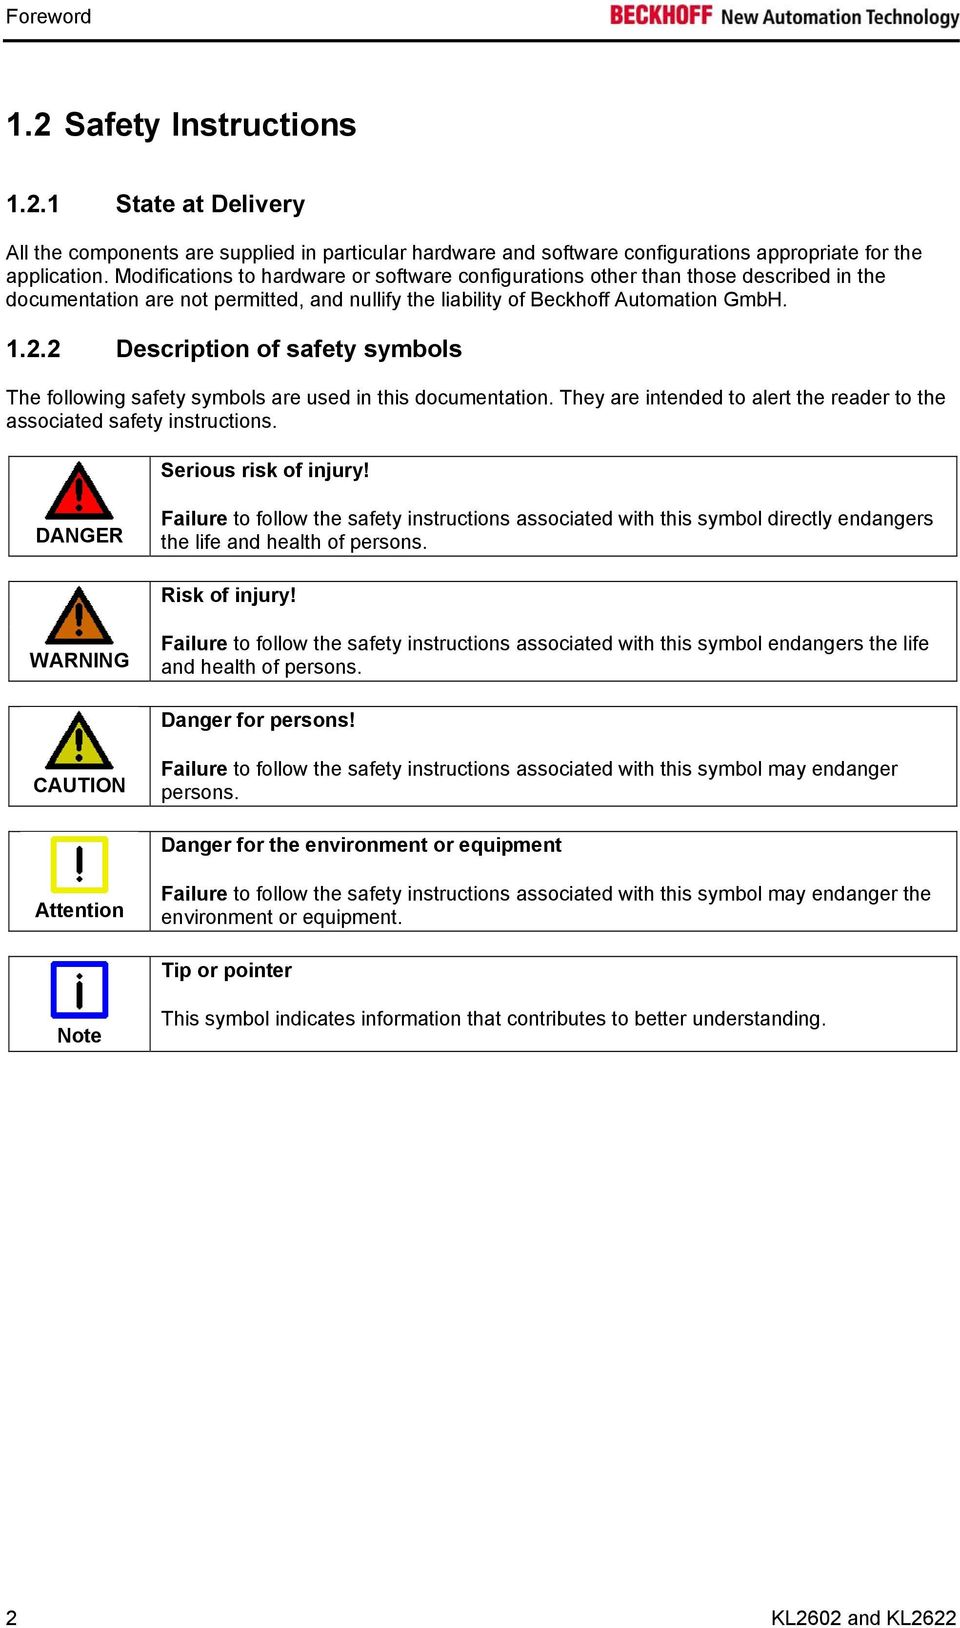 2 Description of safety symbols The following safety symbols are used in this documentation. They are intended to alert the reader to the associated safety instructions. Serious risk of injury!